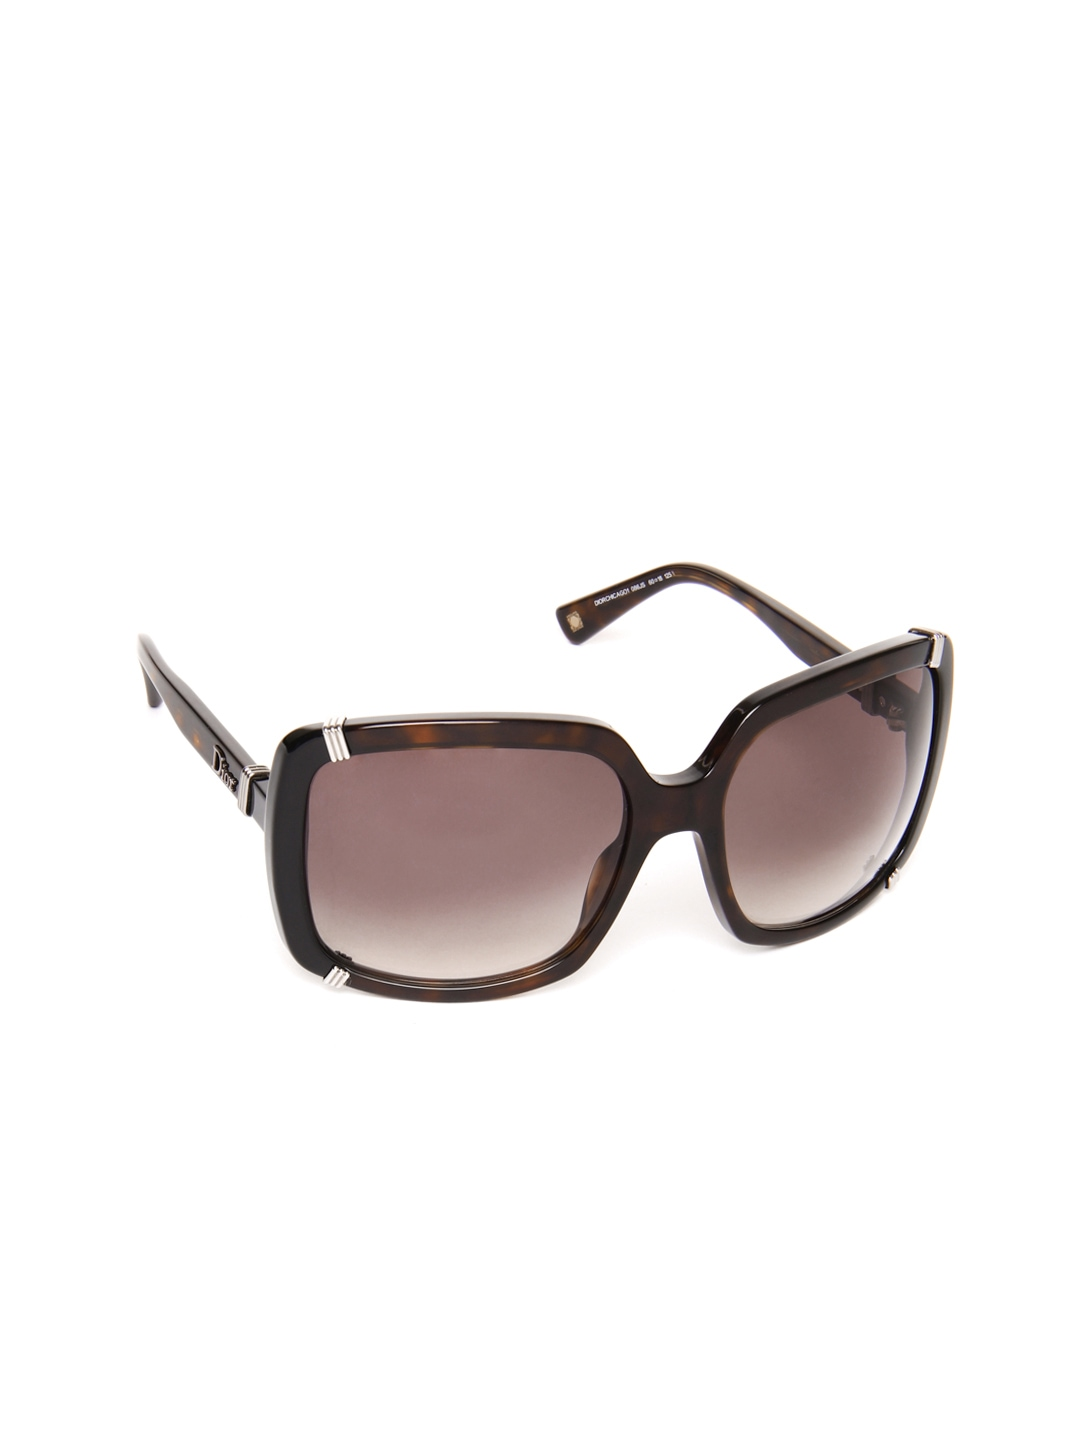 ef8916484ce5 Dior Sunglasses Online Shopping India